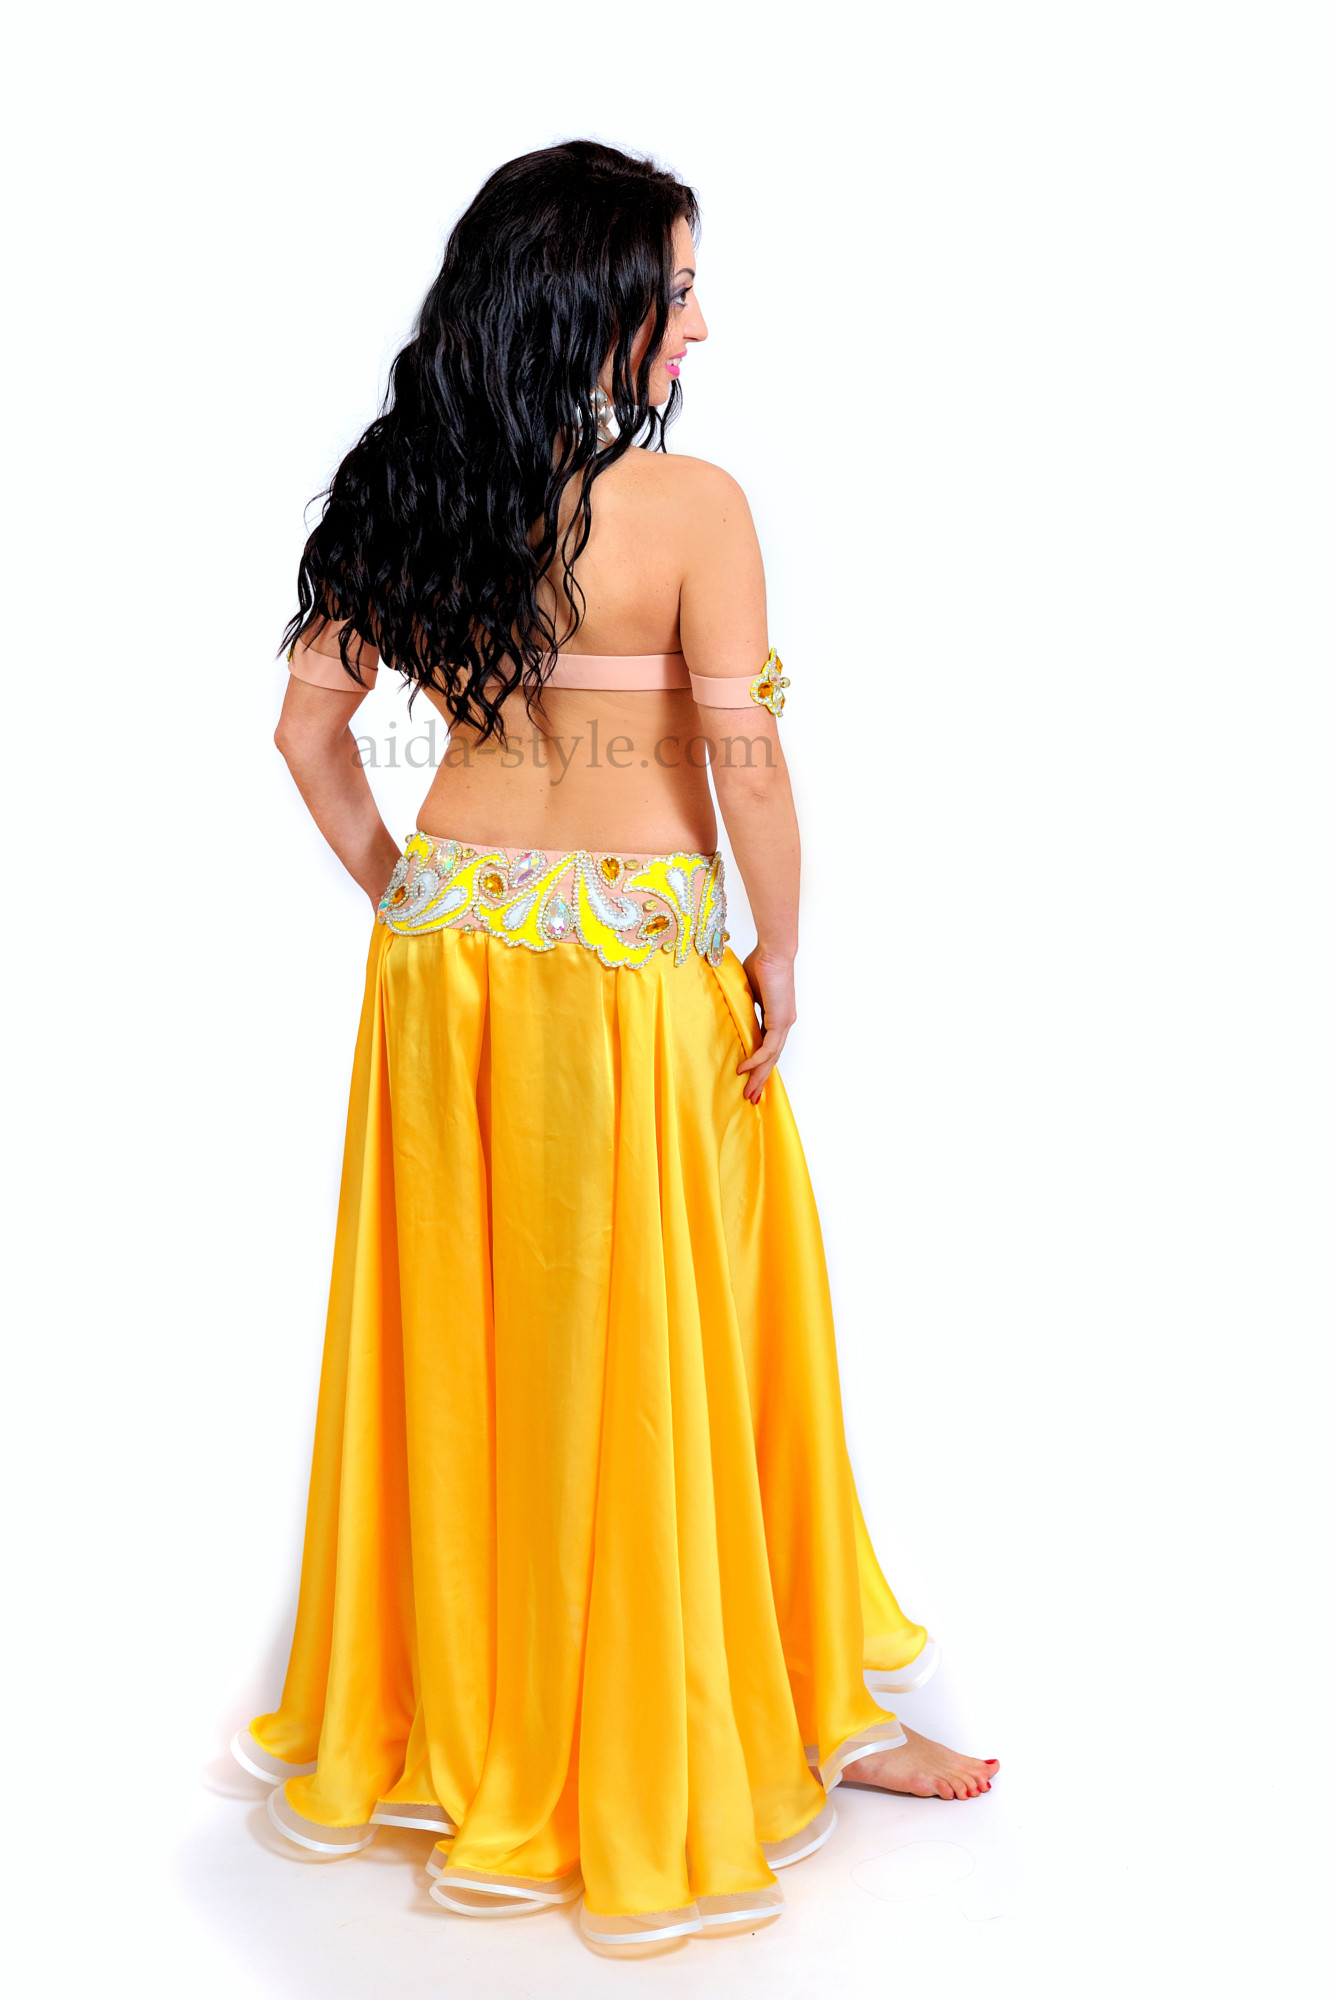 Bright yellow professional belly dance costume with belt and bra decorated with oriental patterns